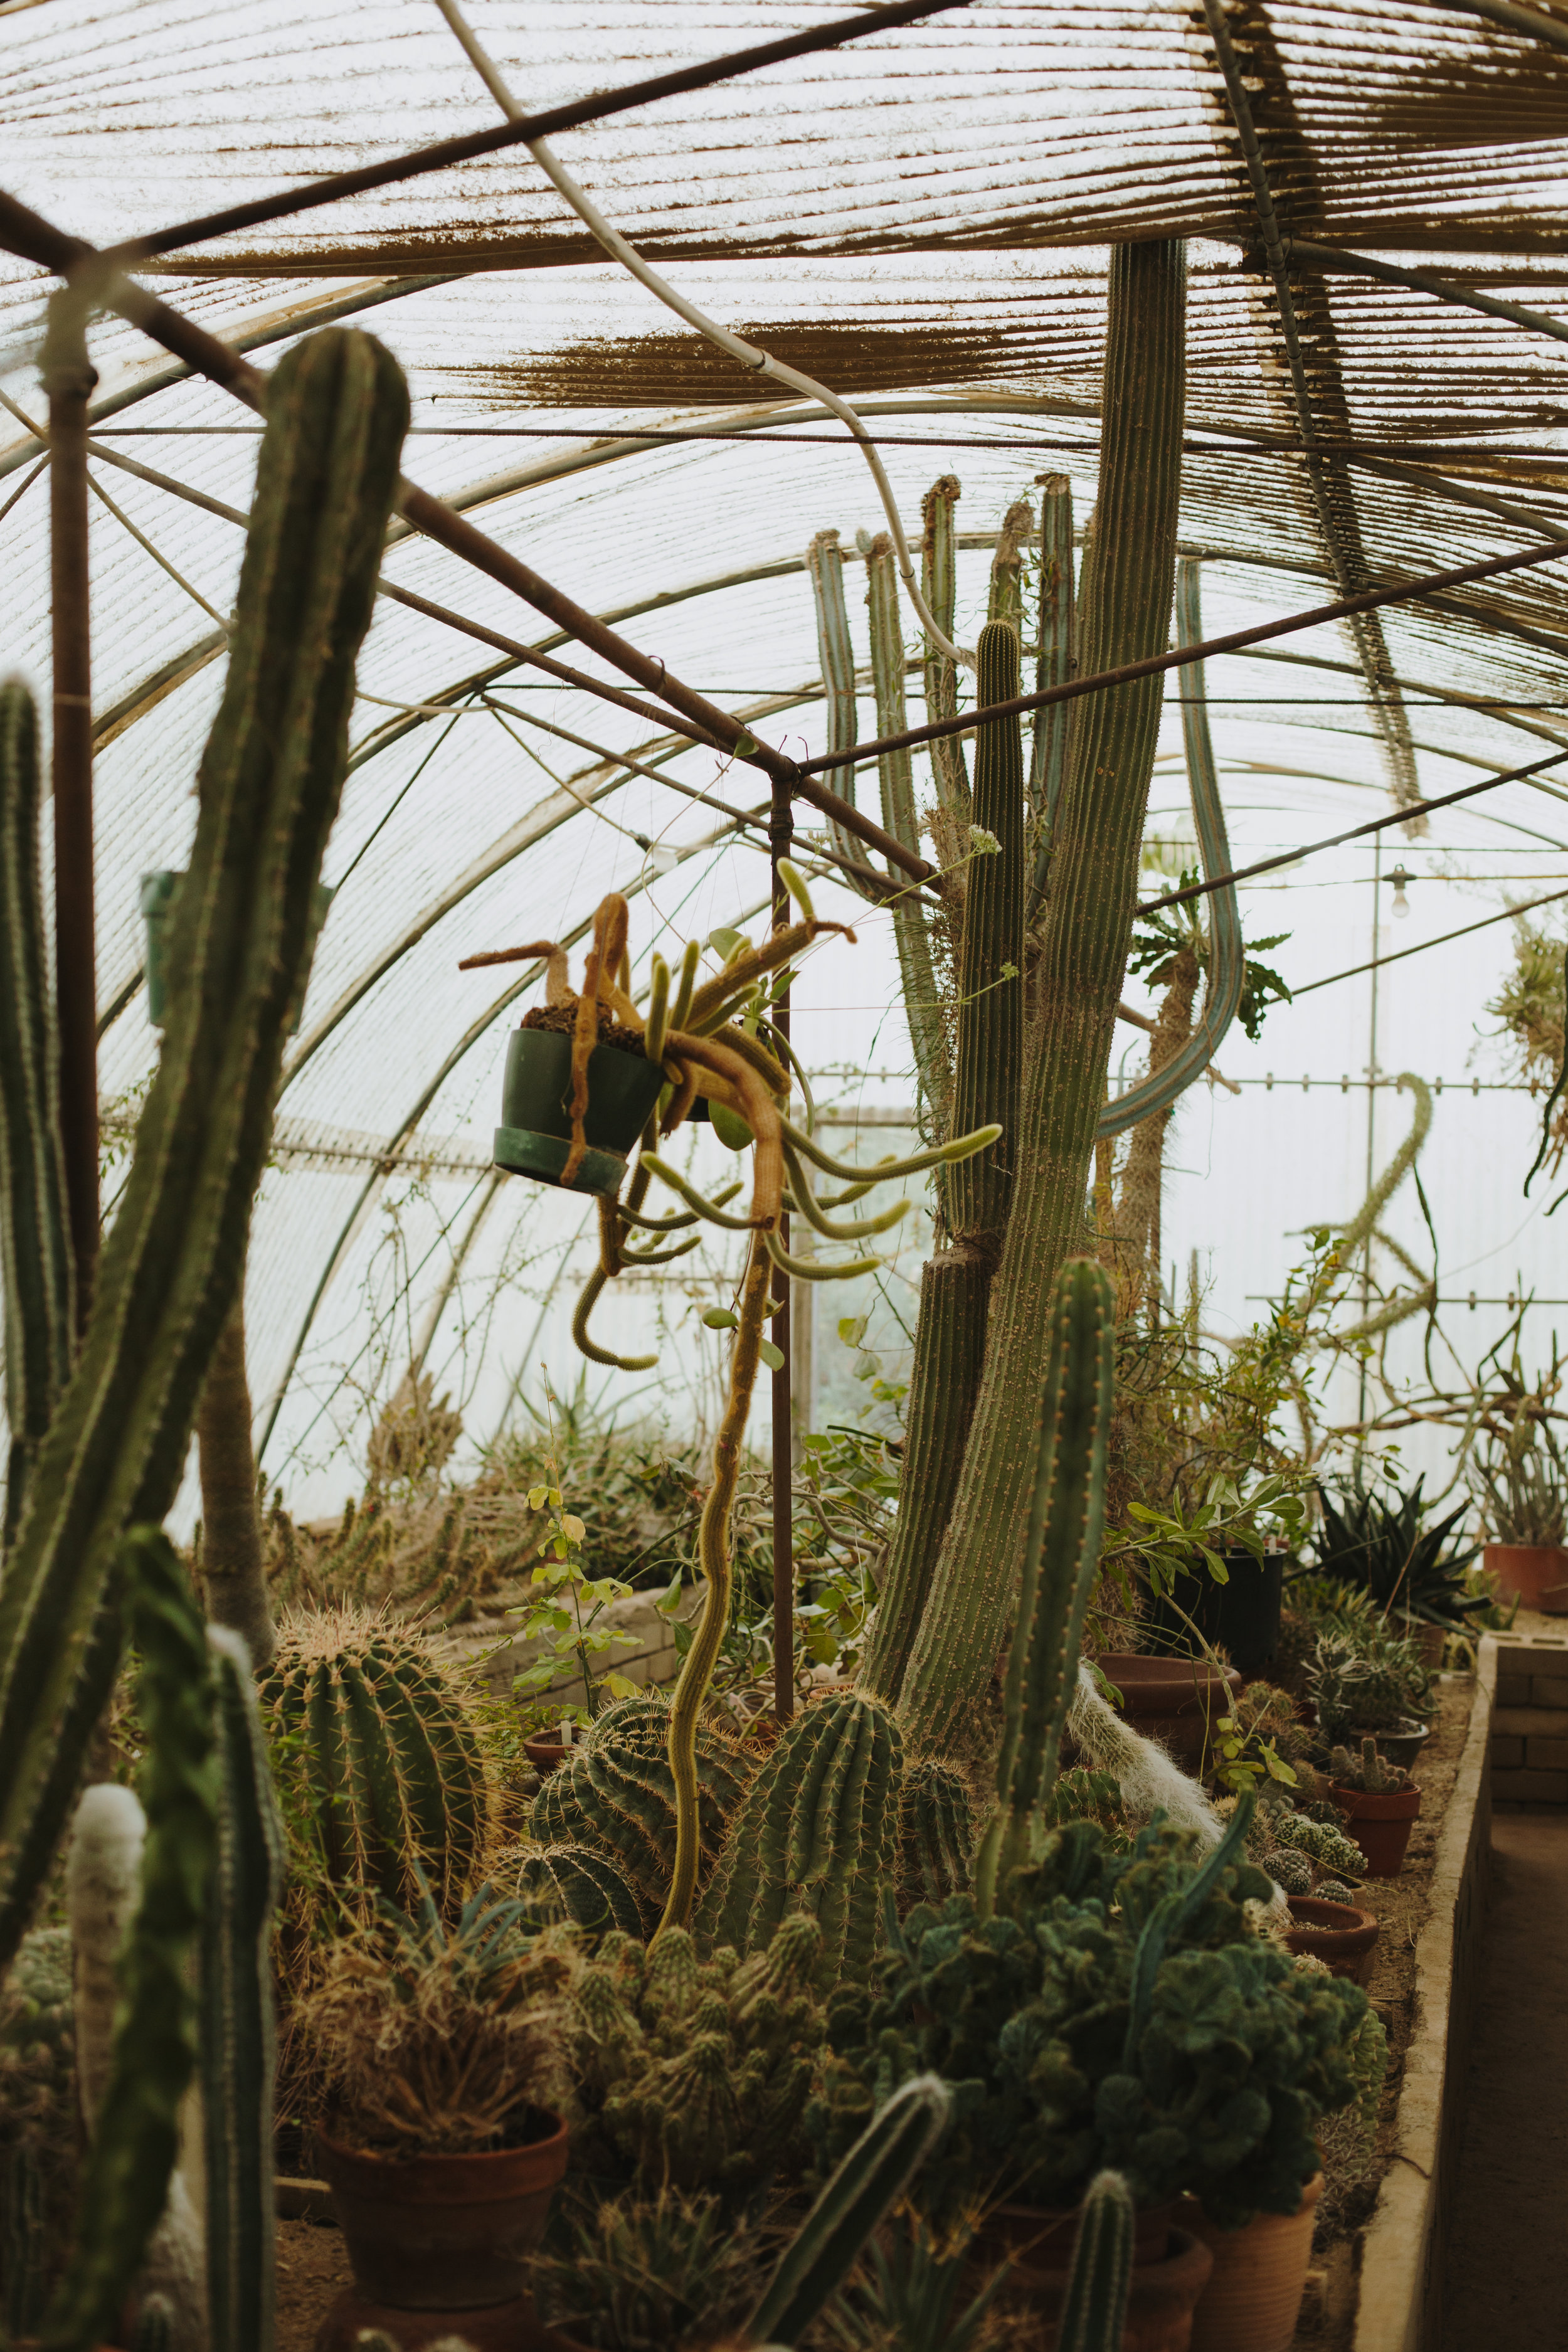 Moorten Botanical Garden - This family owned botanical garden not only features the first ever cactarium, but over 3,000 species of cacti and other desert plants. Wander around the garden or pick out your own cactus to take home.